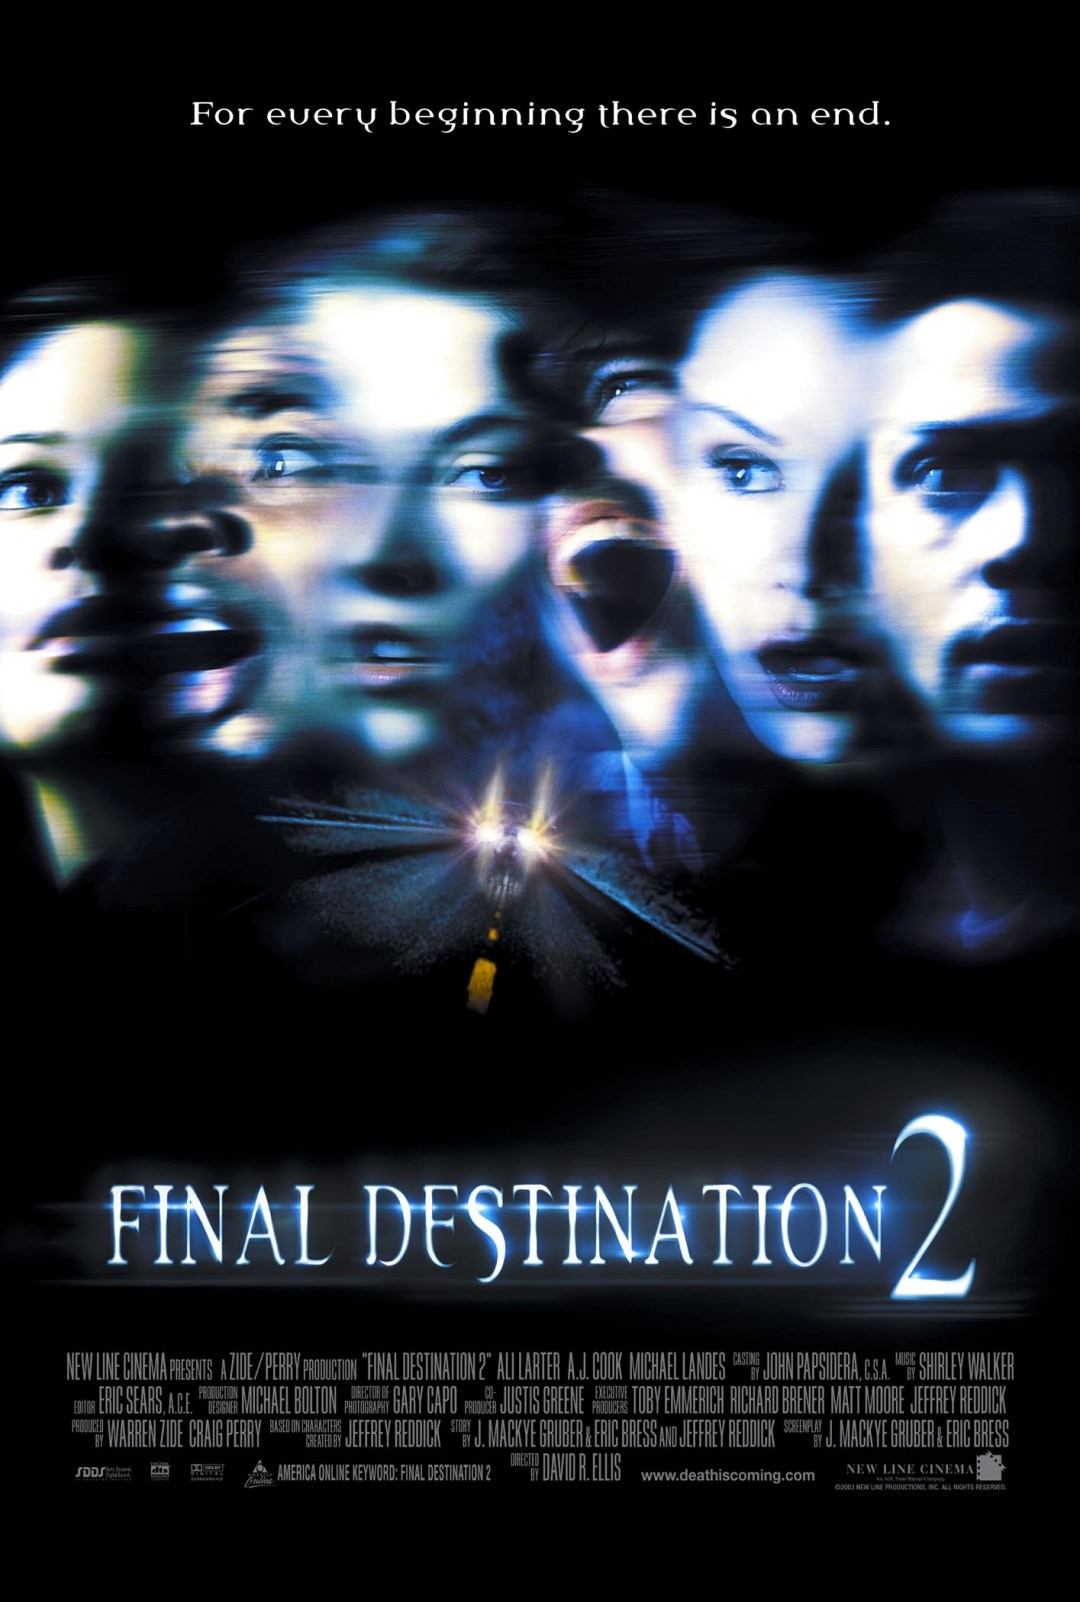 Final Destination 2  poster is copied by Bhoot